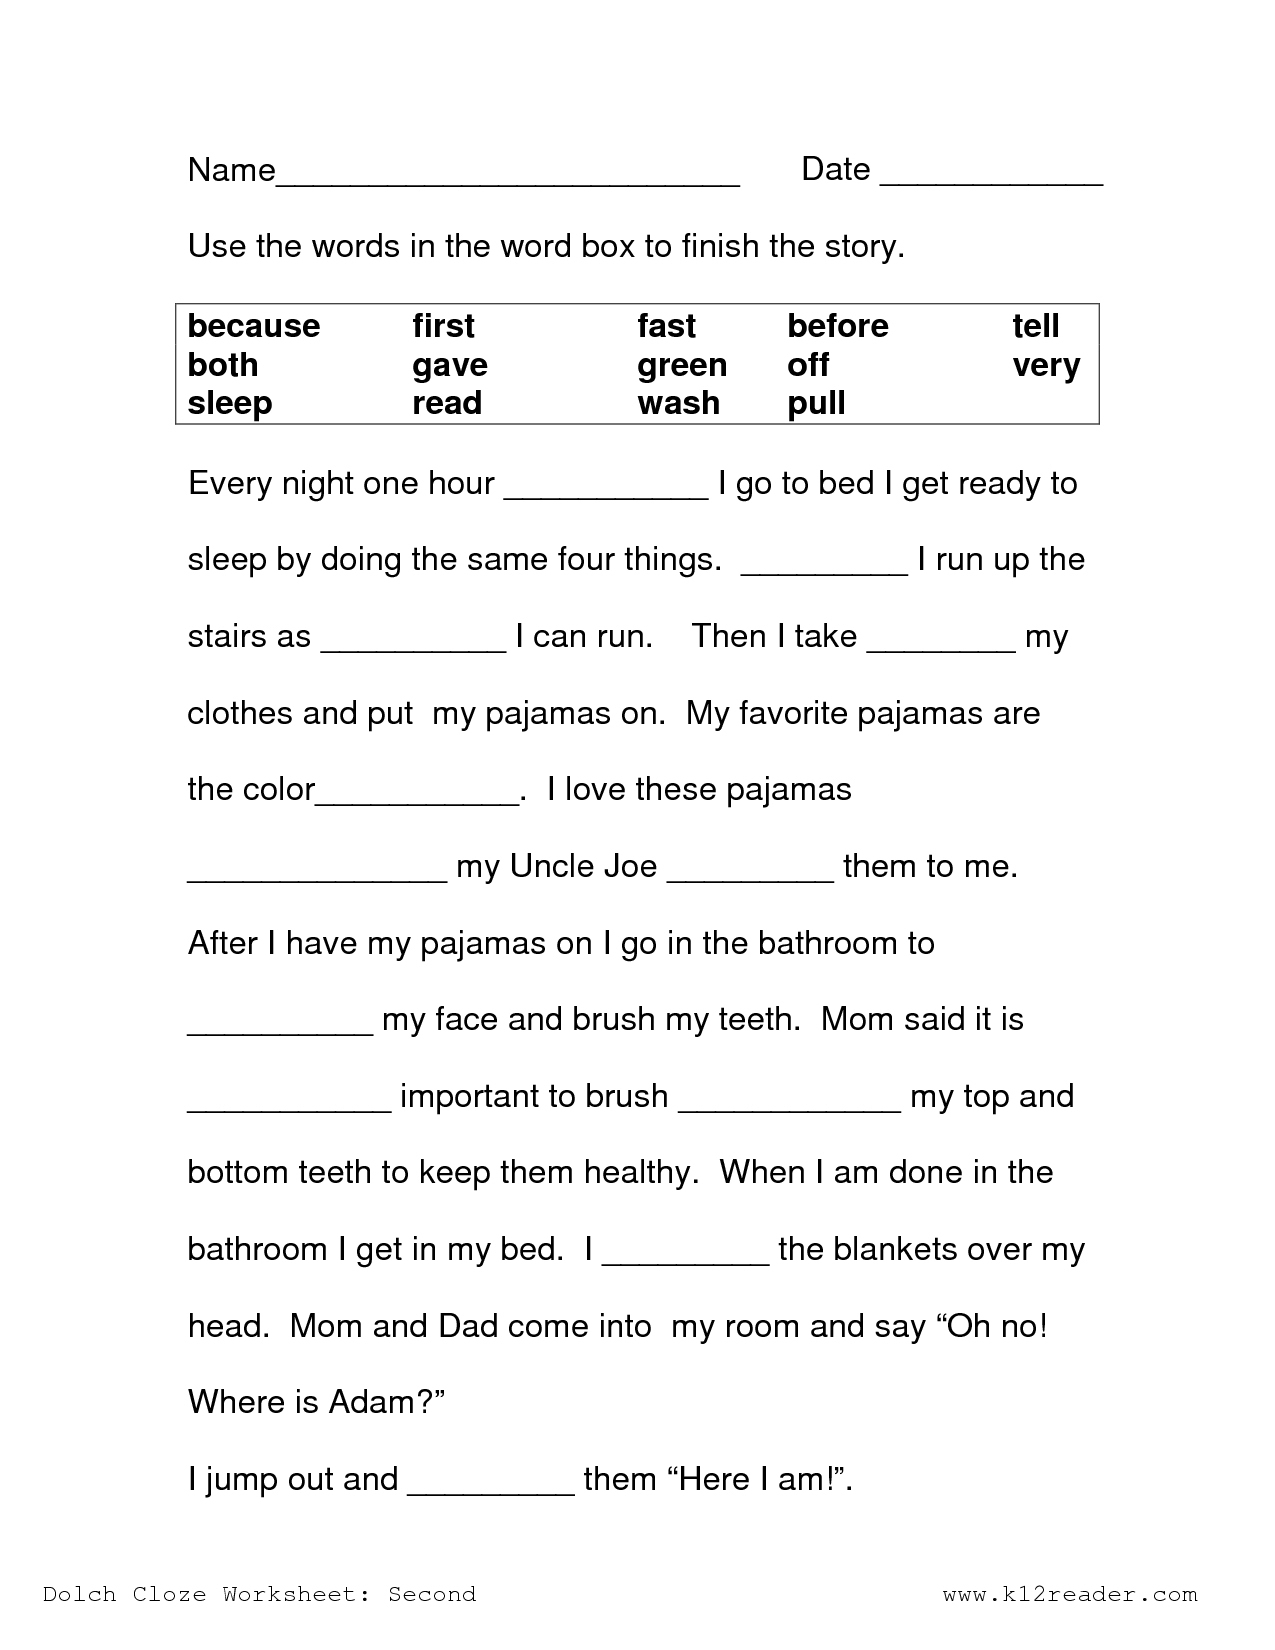 Free Printable Reading Comprehension Worksheets 3Rd Grade To Print | Free Printable Reading Comprehension Worksheets For 3Rd Grade